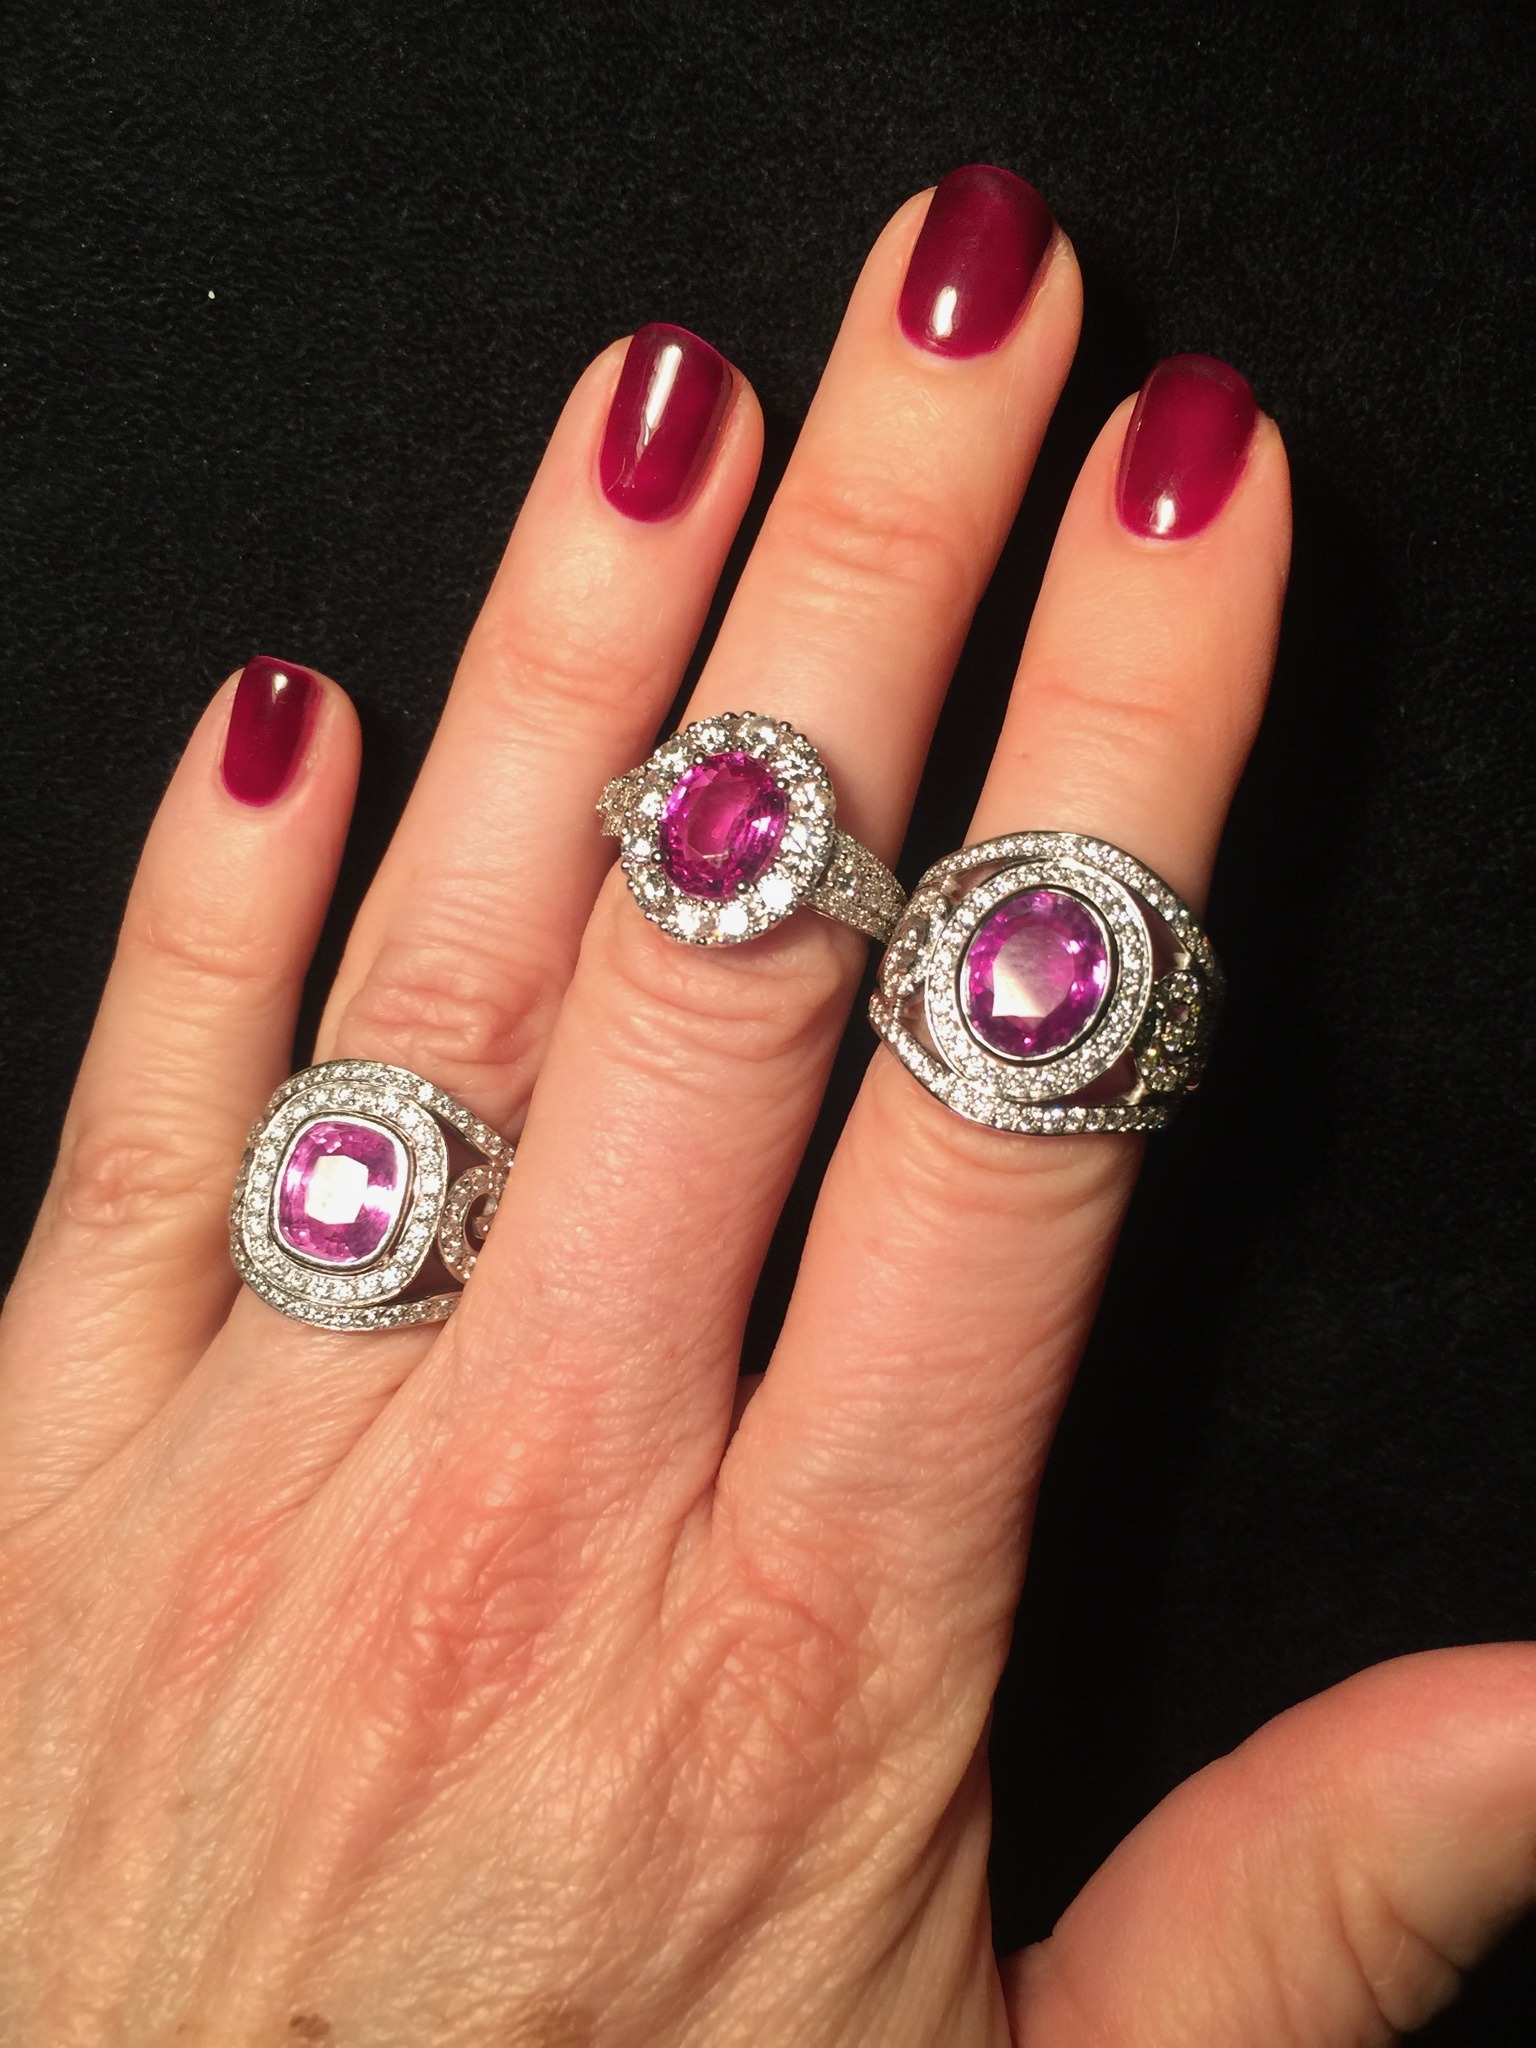 Pink sapphires in different settings, with diamonds